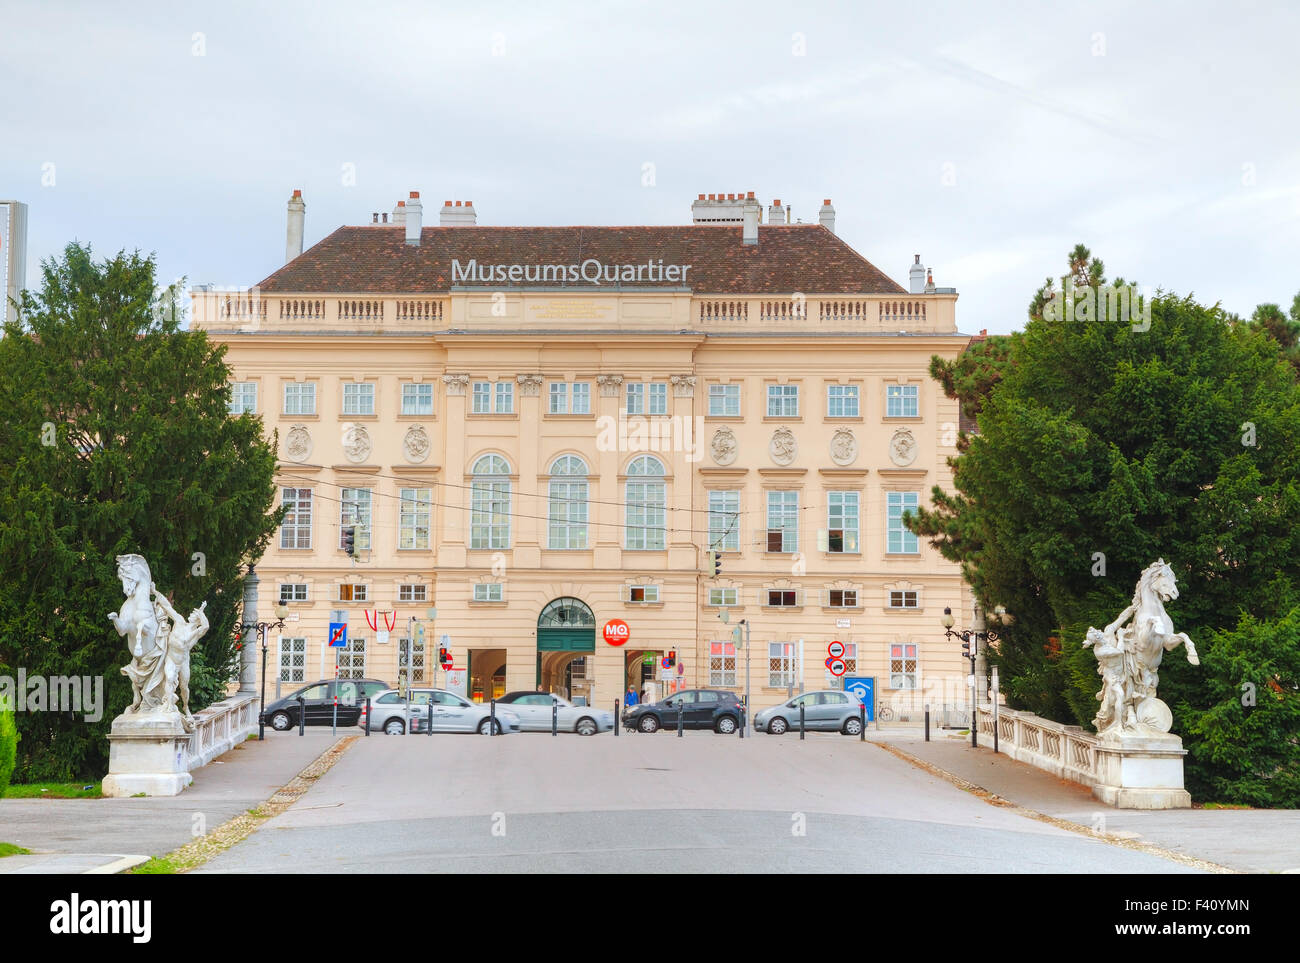 Museums Quartier building in Vienna - Stock Image